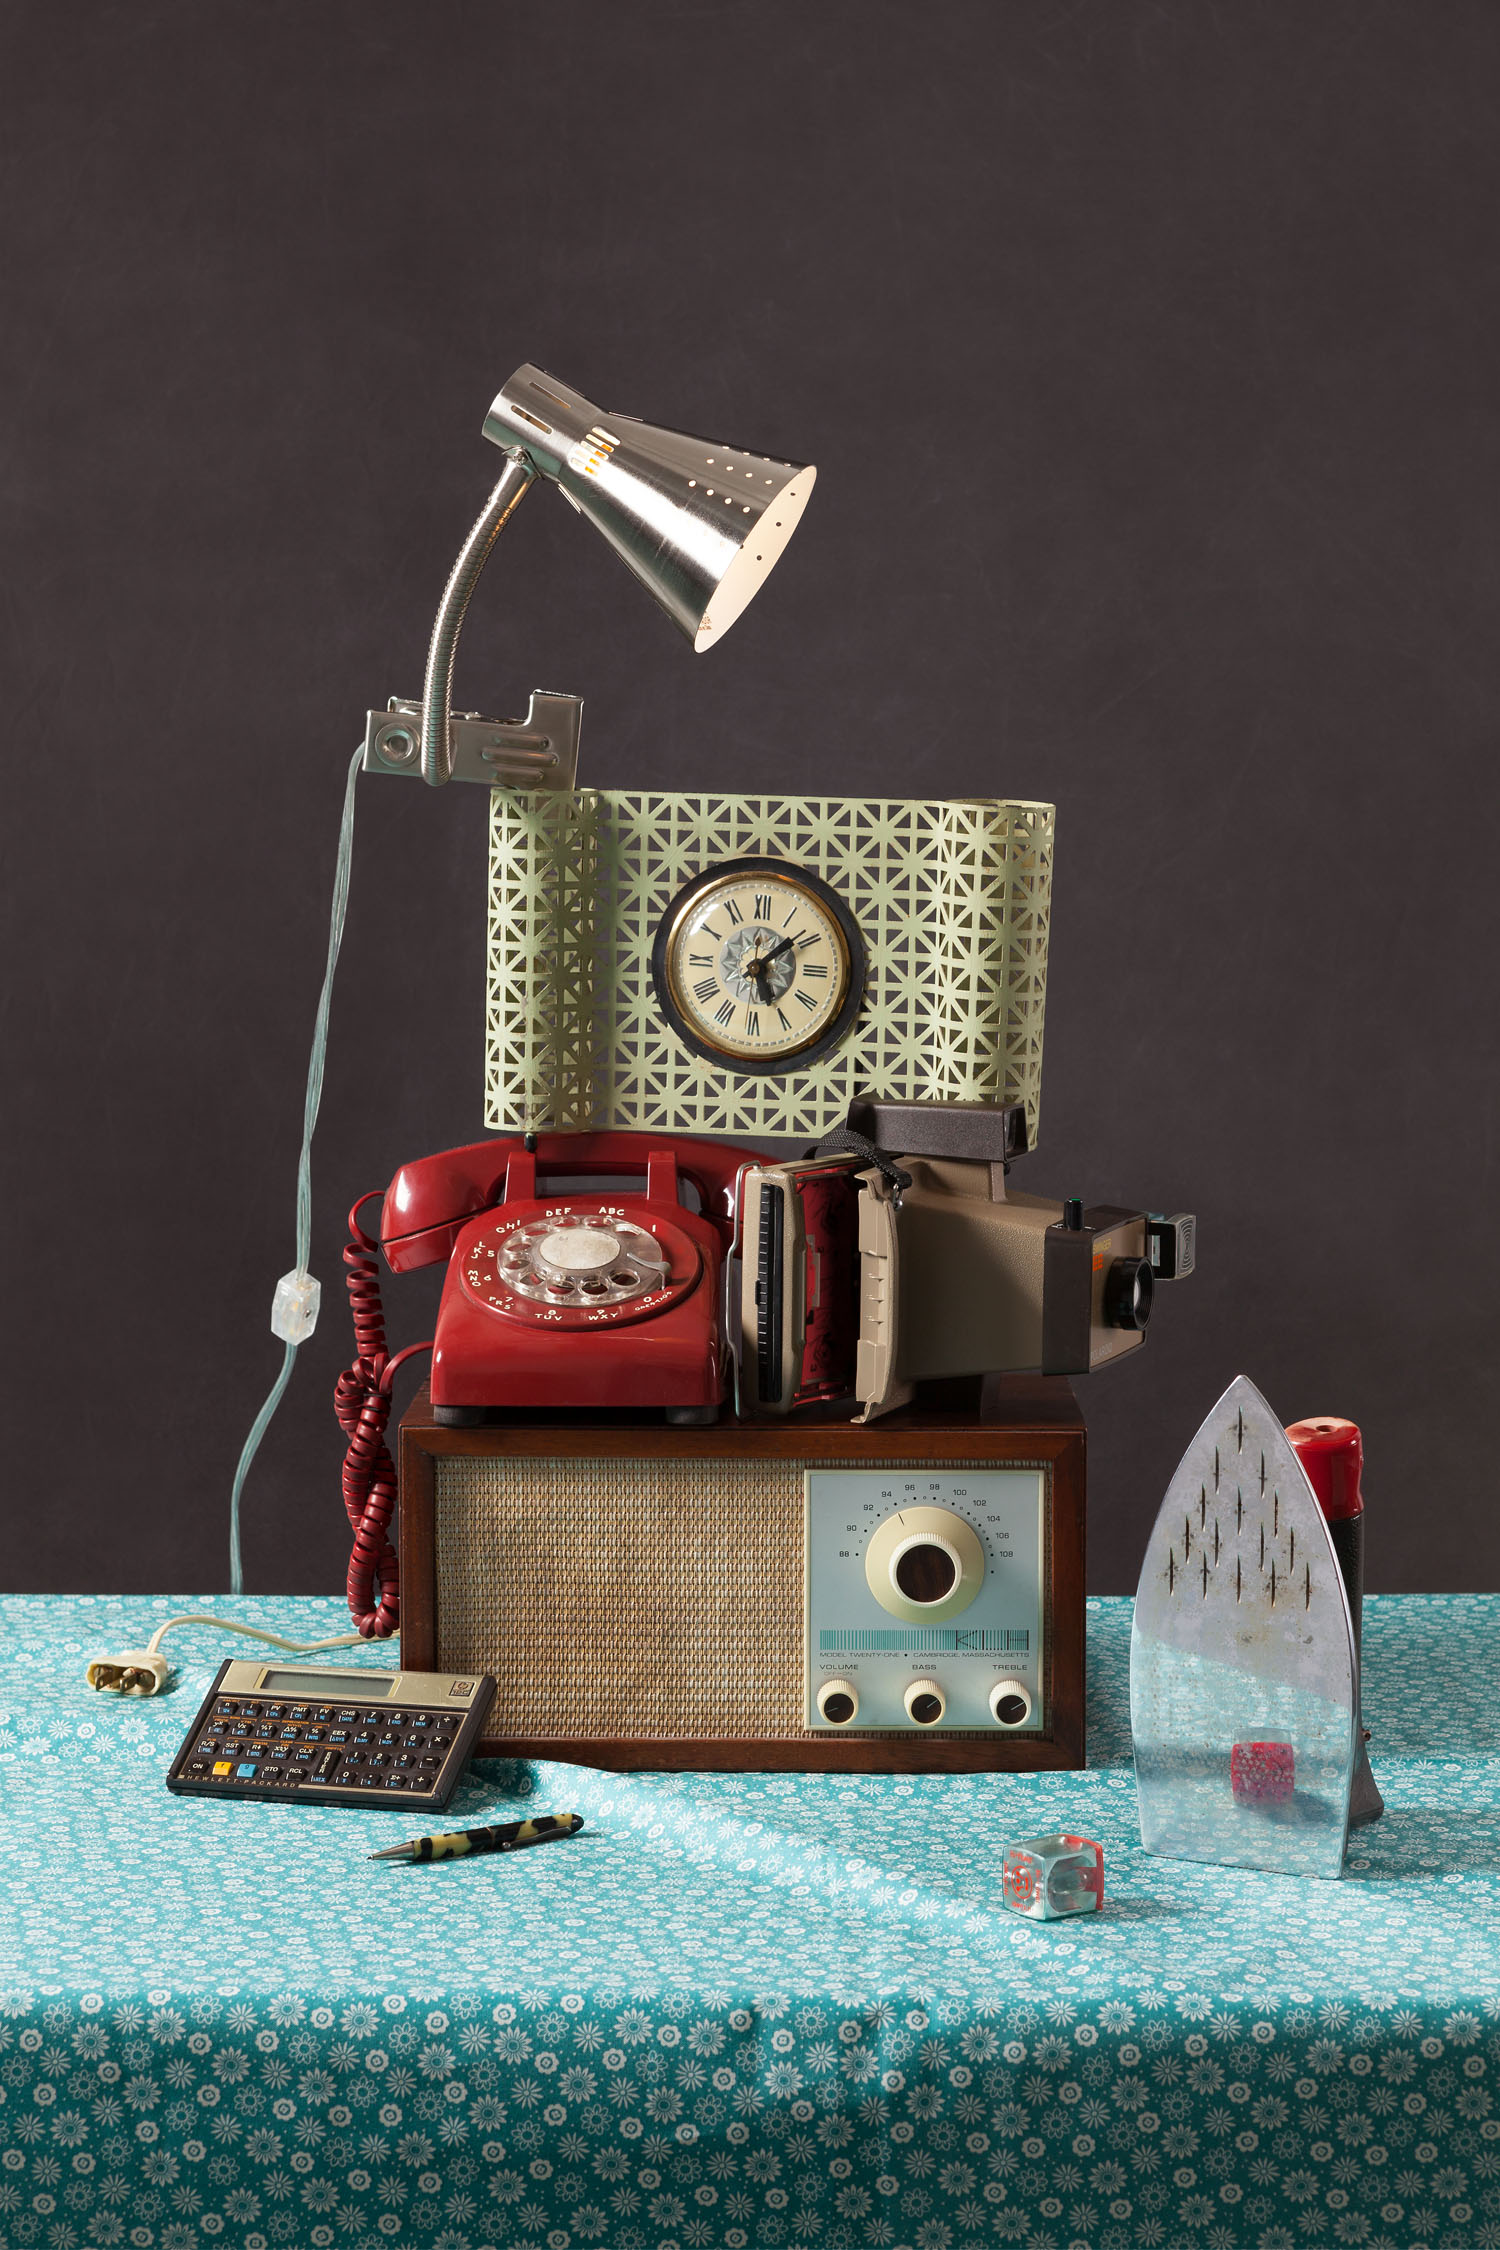 A still life photograph from the Tech Vanitas series by Jeanette May.